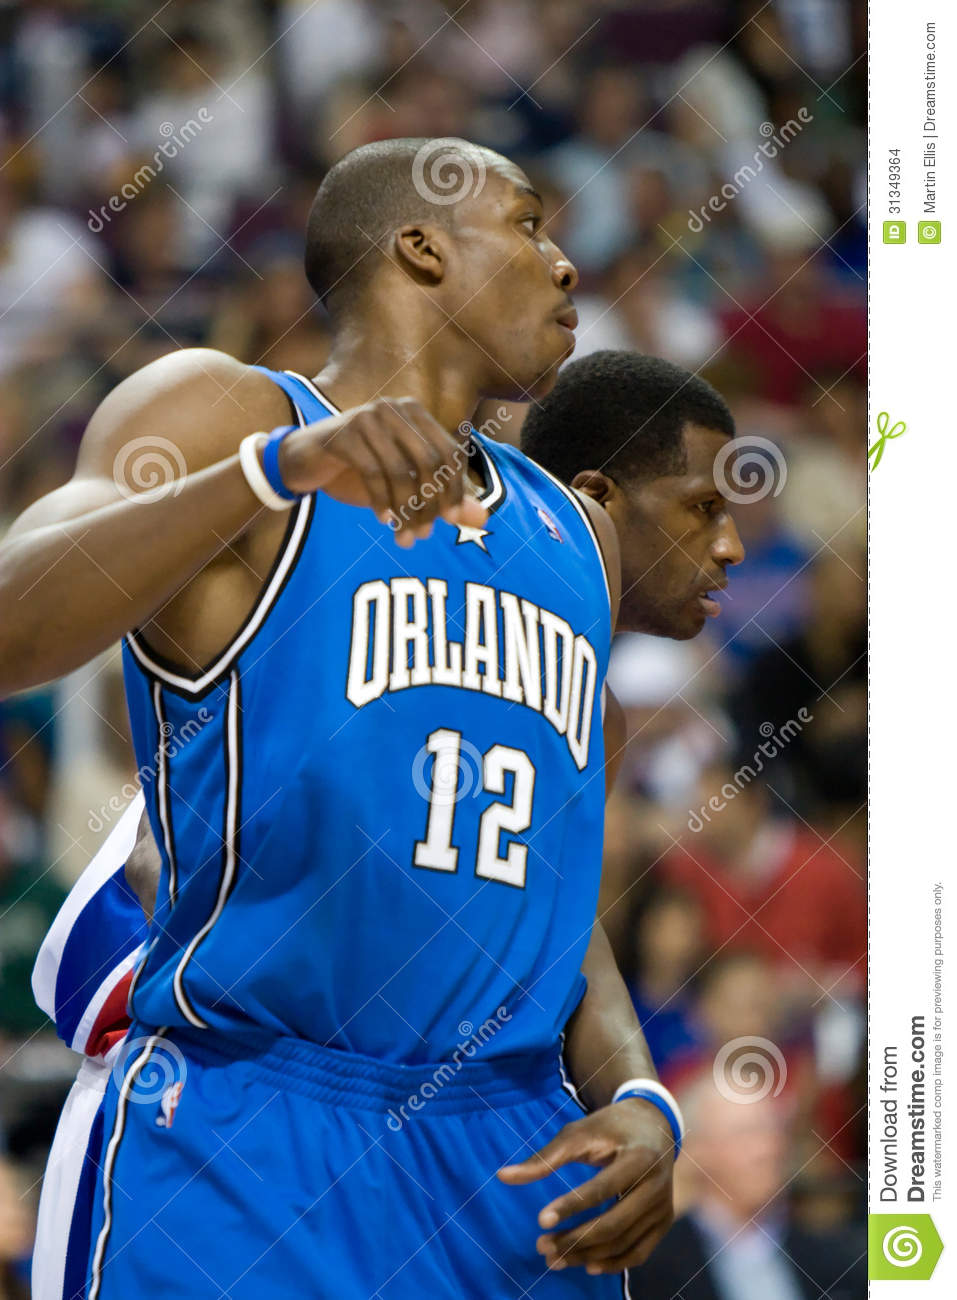 Dwight Howard Antonio McDyess